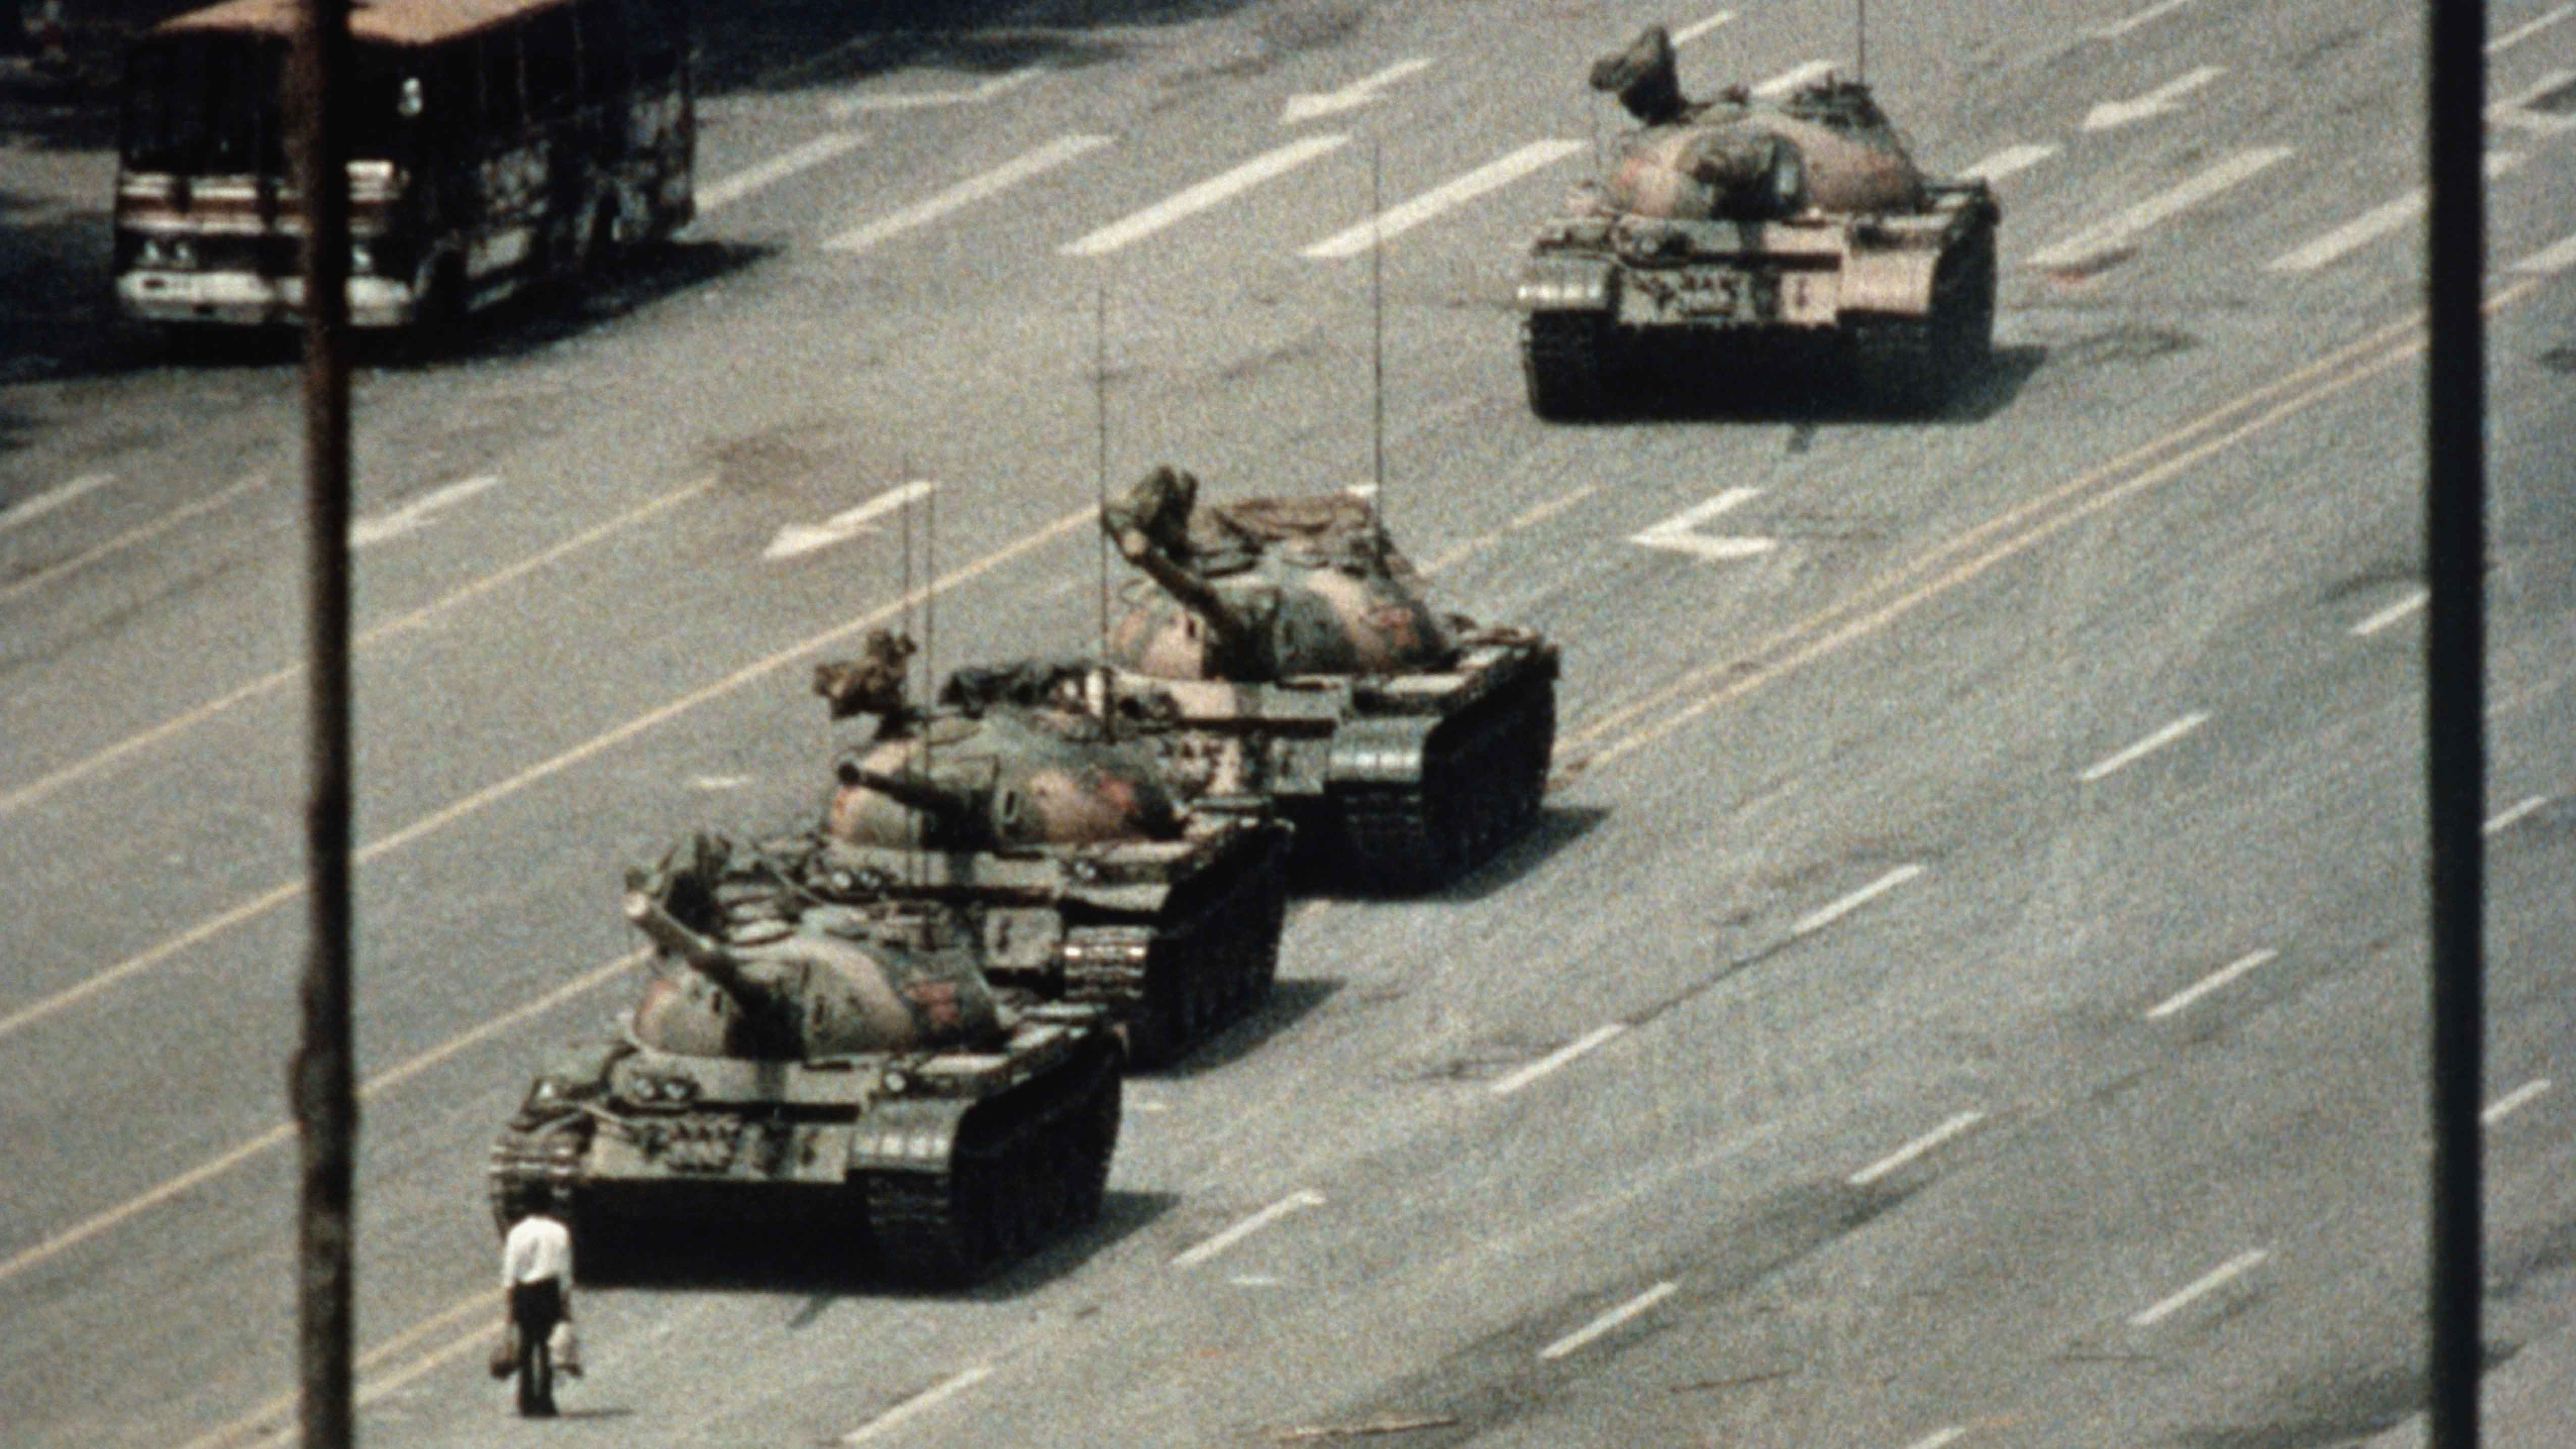 Who Was the Tank Man of Tiananmen Square? - HISTORY